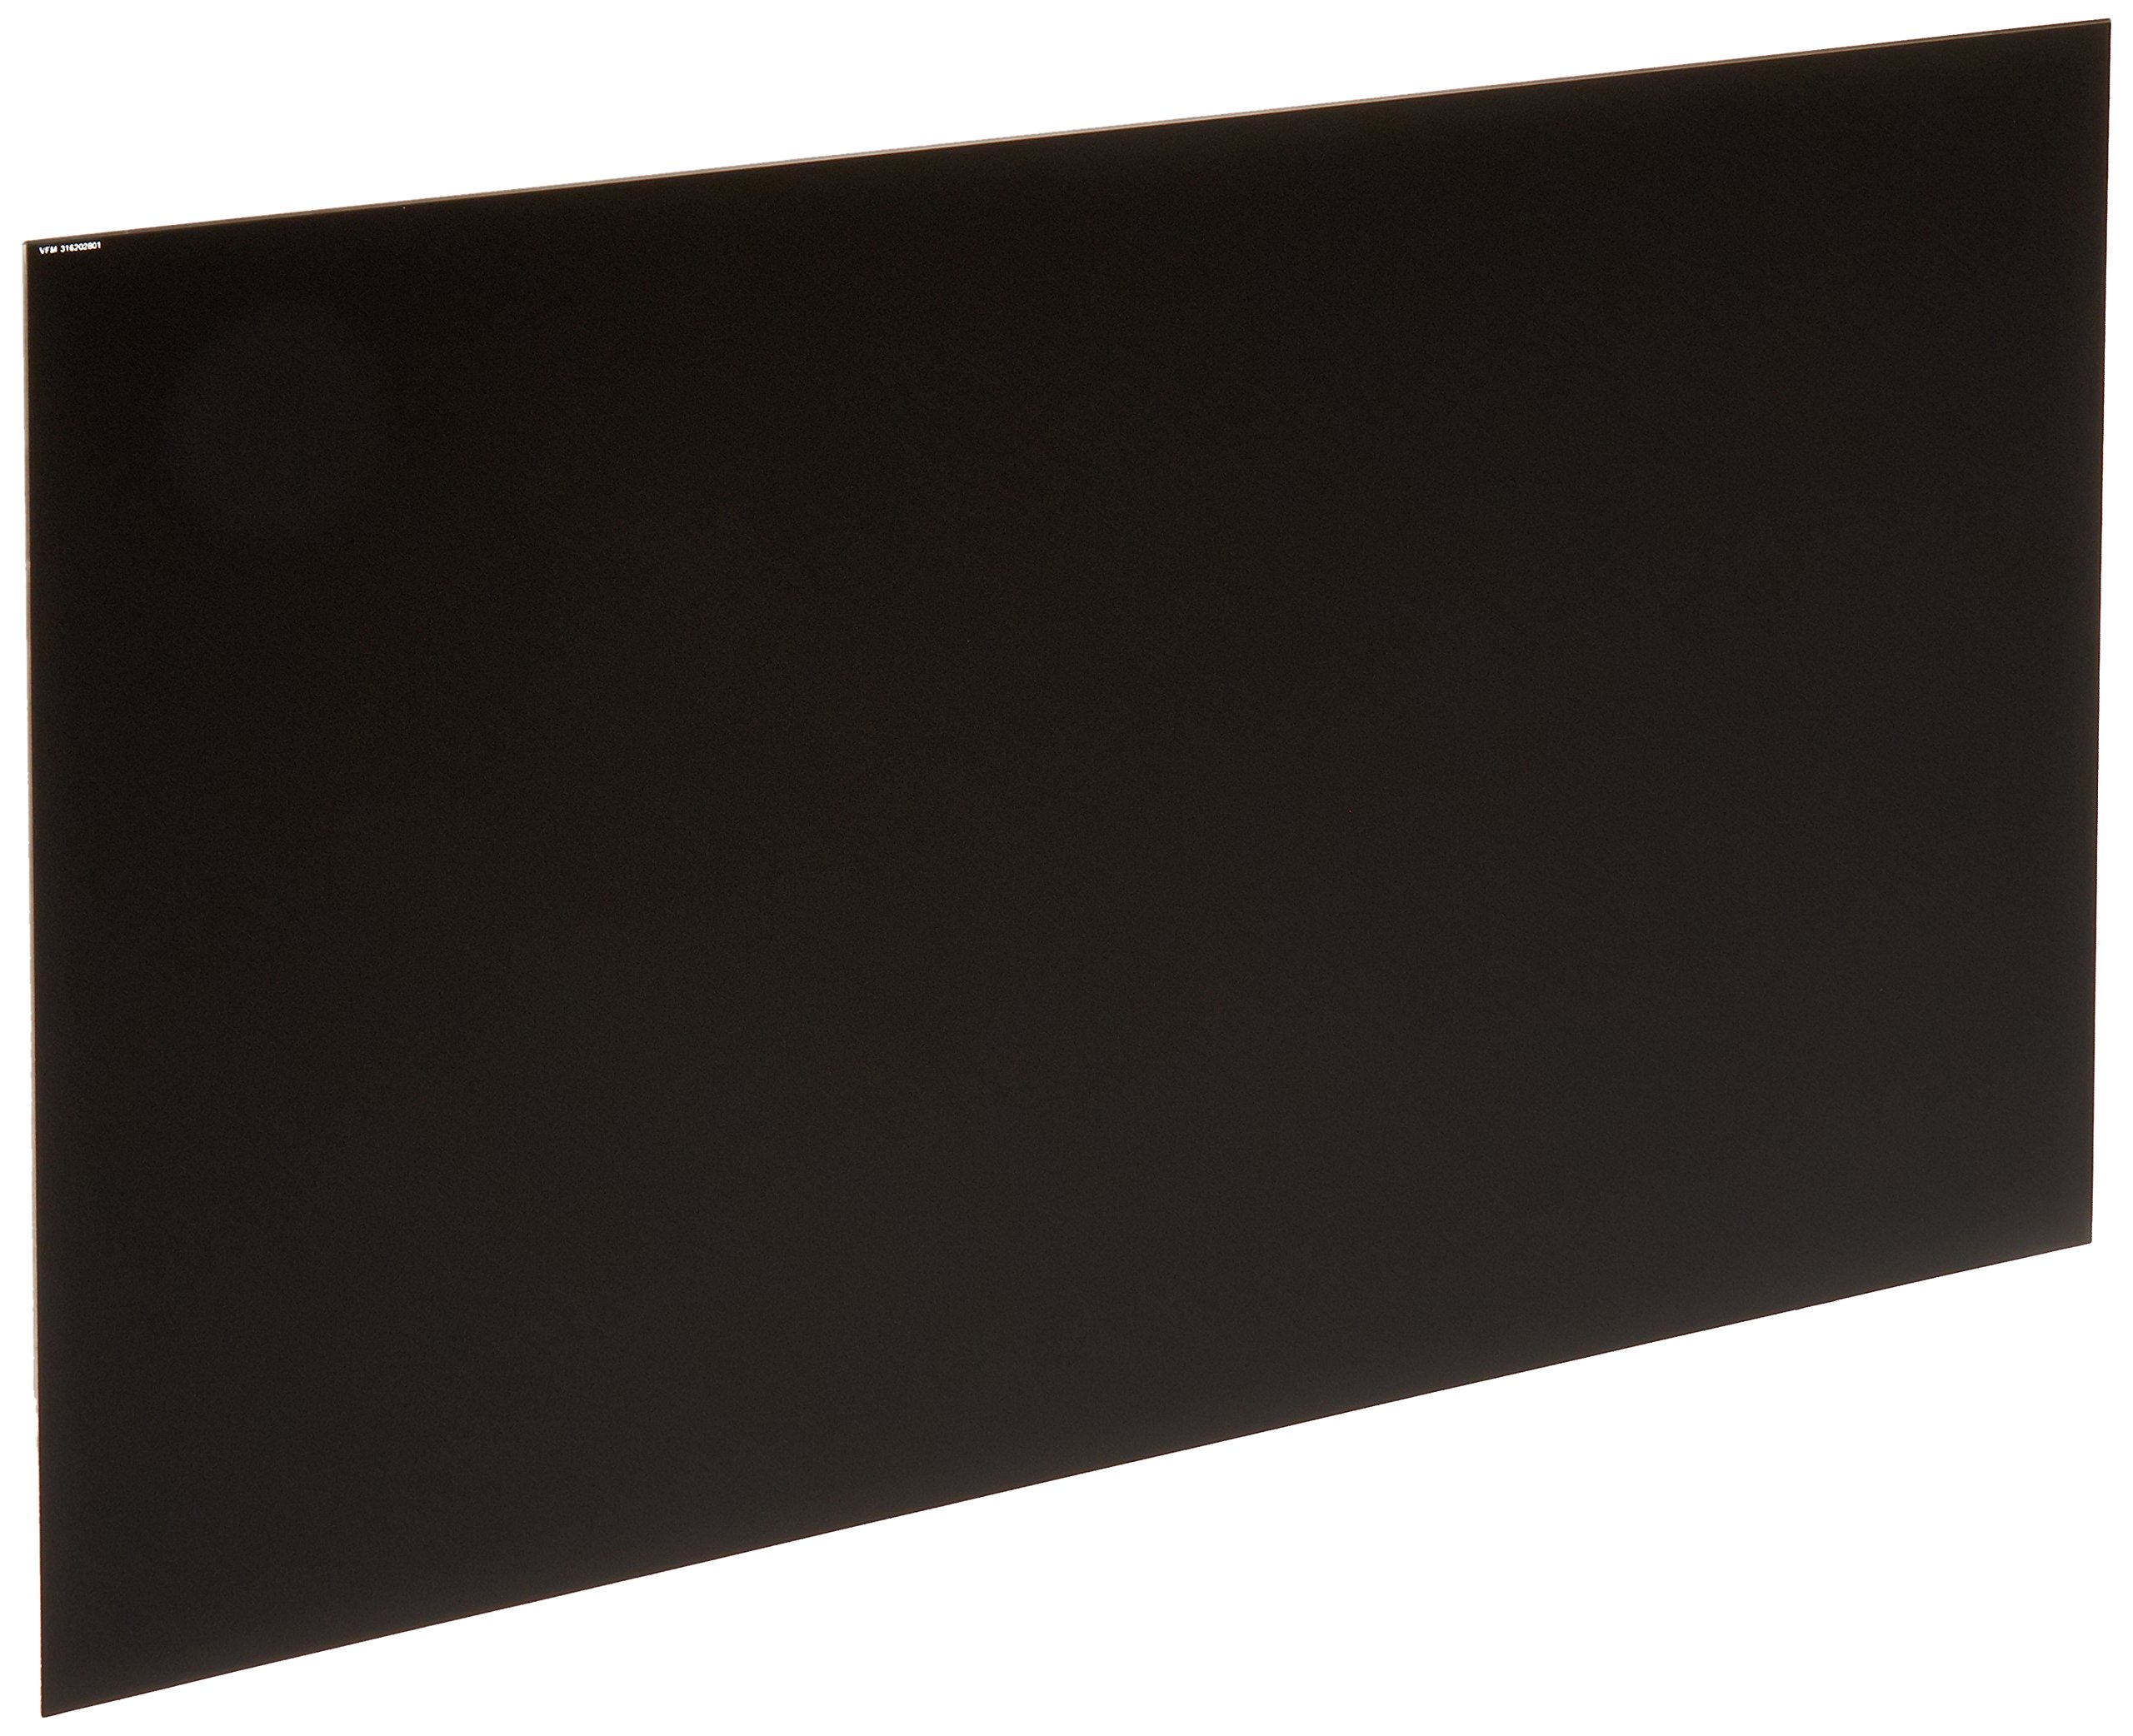 Frigidaire 316202801 Range/Stove/Oven Glass Cooktop by Frigidaire